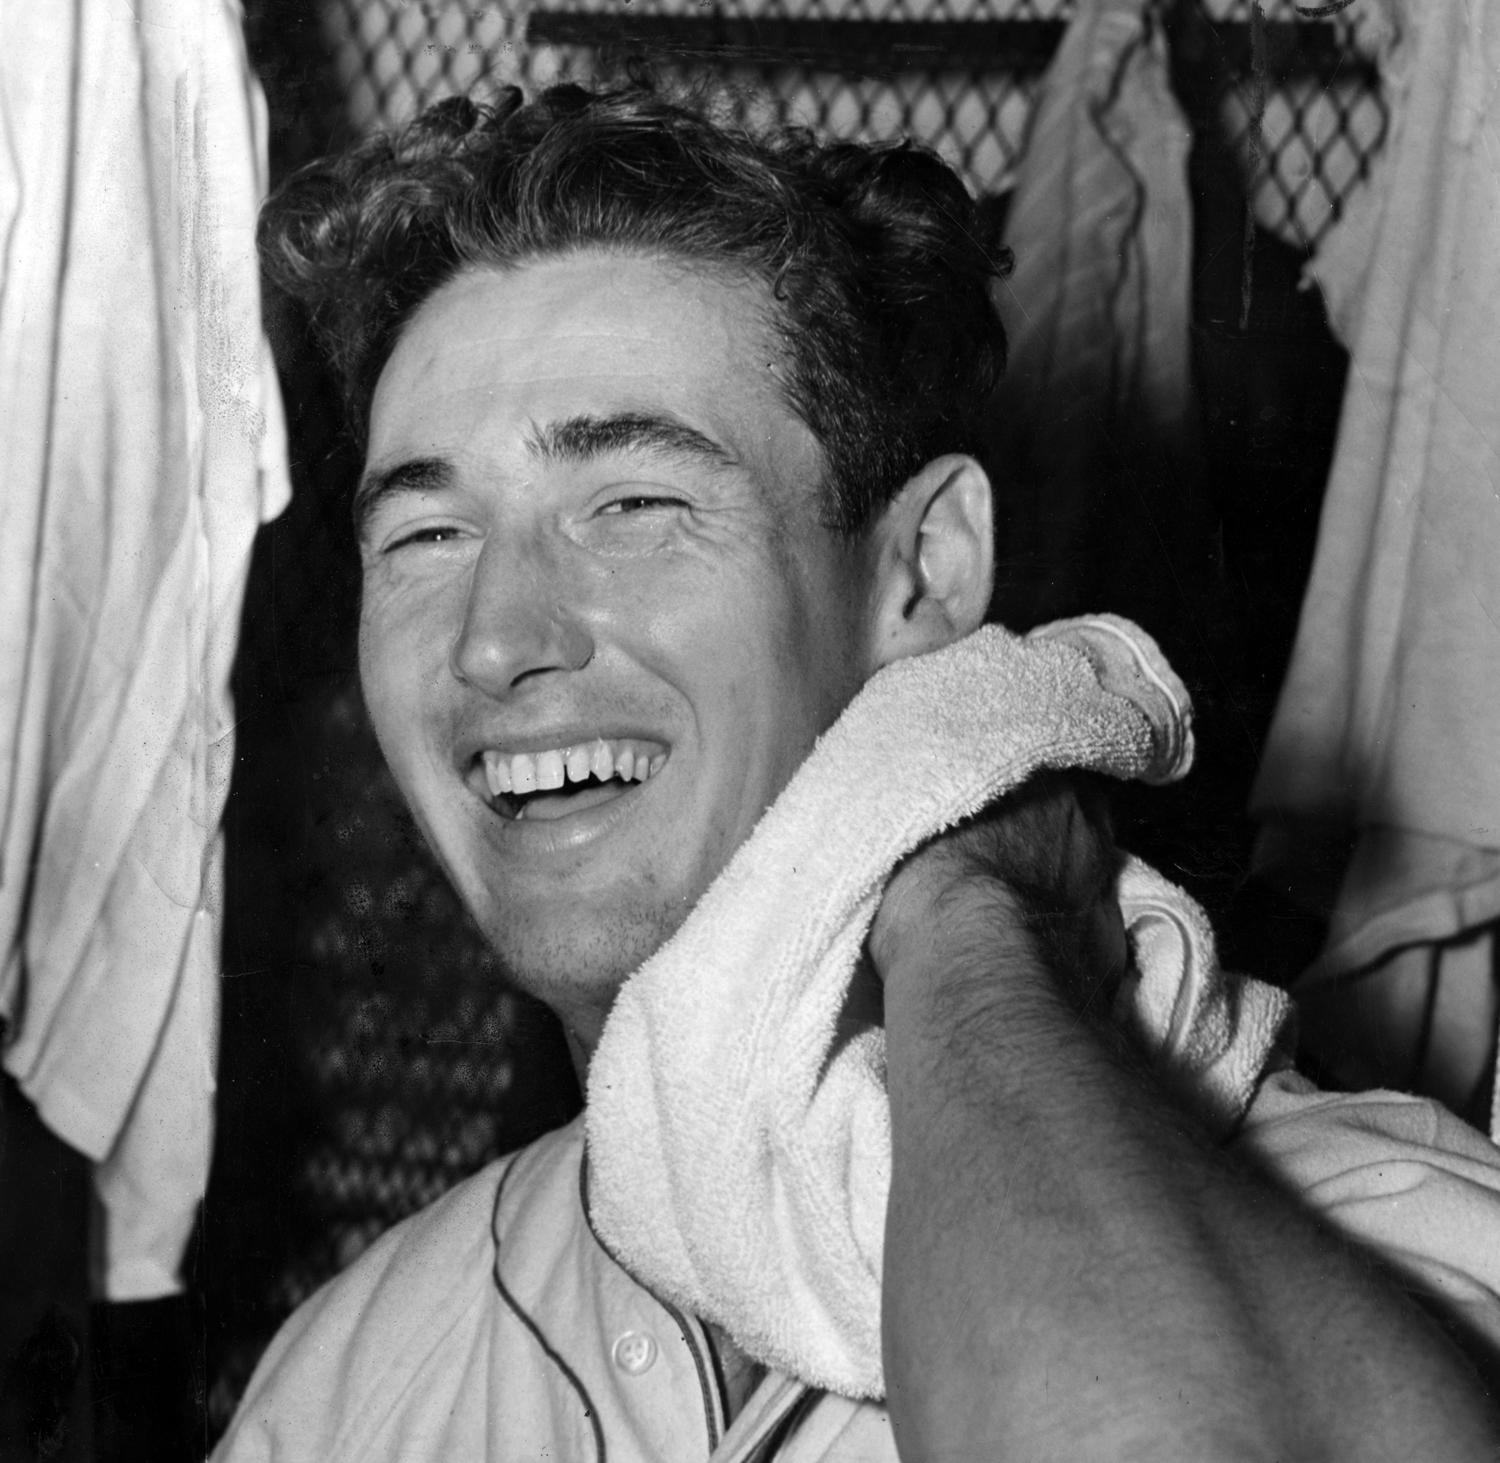 Ted Williams, nicknamed The Splendid Splinter, led the American League in bases on balls eight times in his 19-year career with the Boston Red Sox. (National Baseball Hall of Fame and Museum)